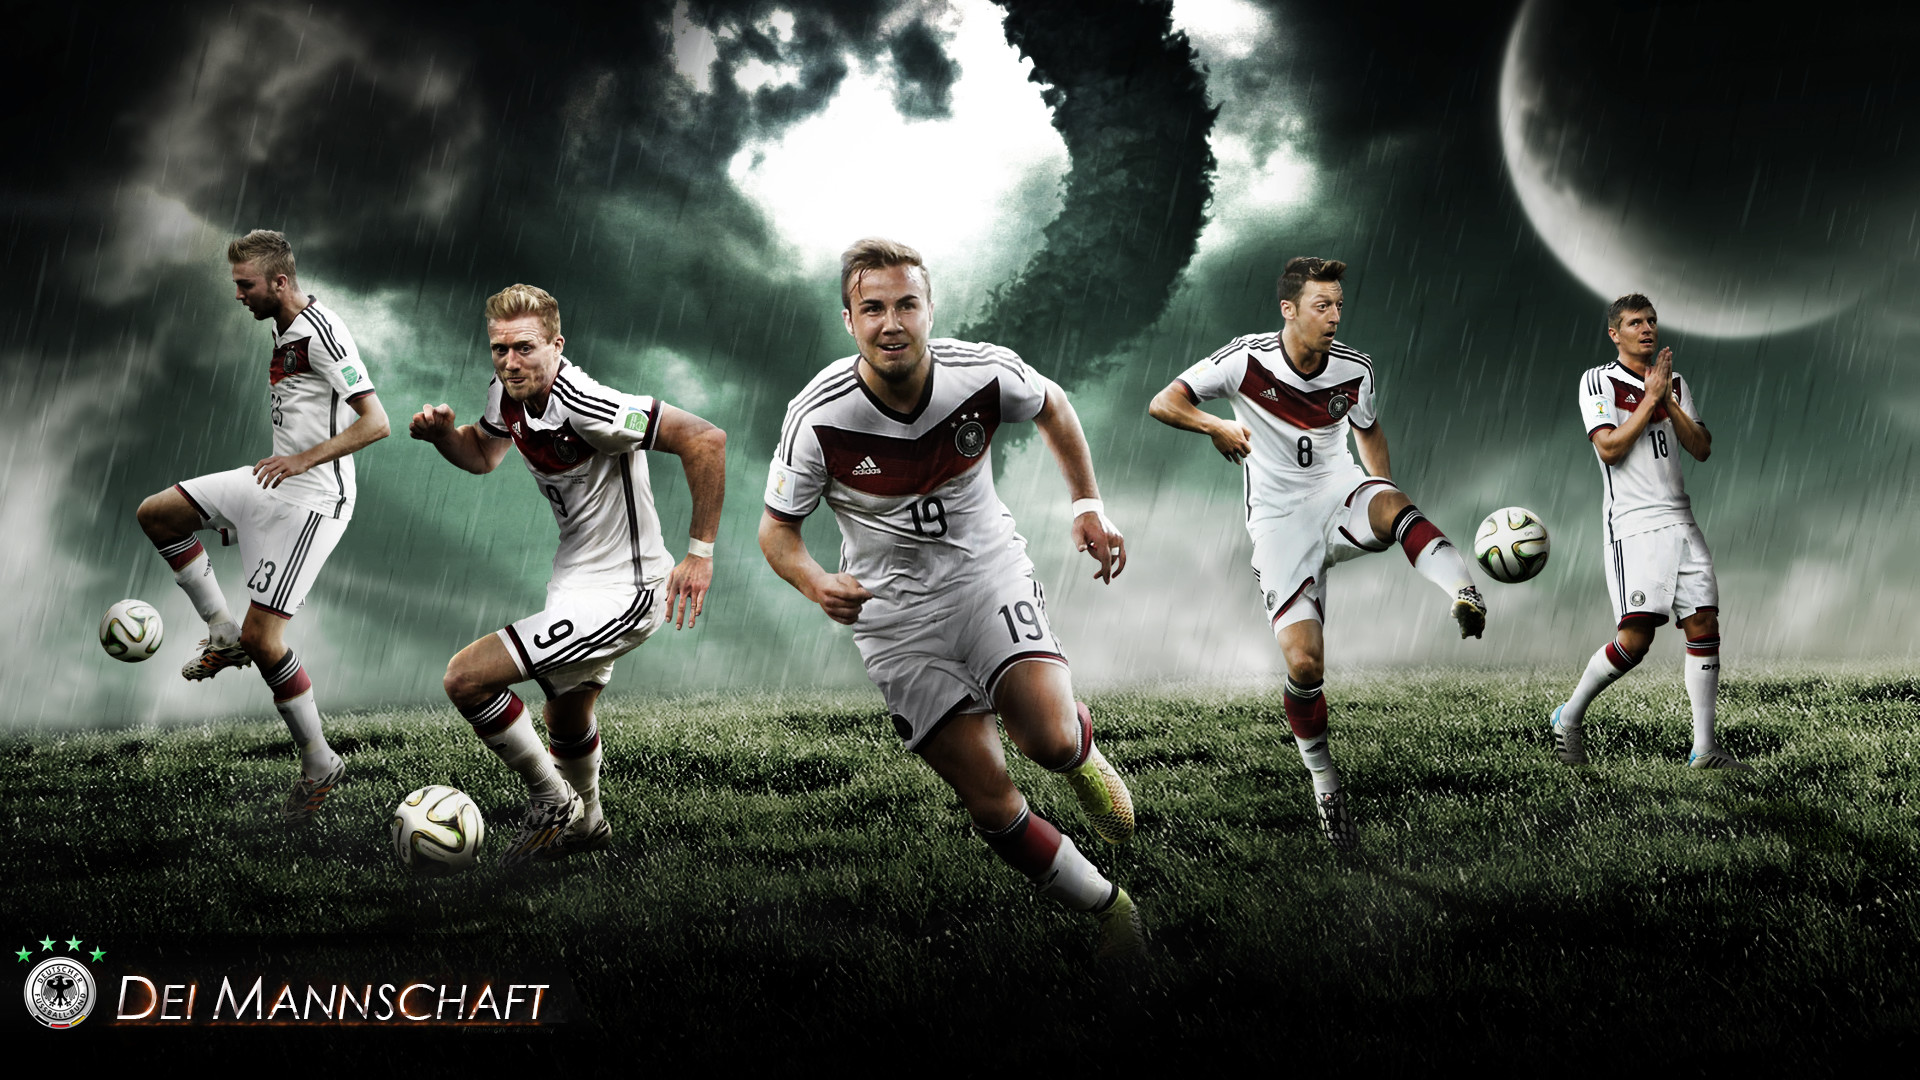 1920x1080 Germany National Football Team images Die Mannschaft HD wallpaper and  background photos